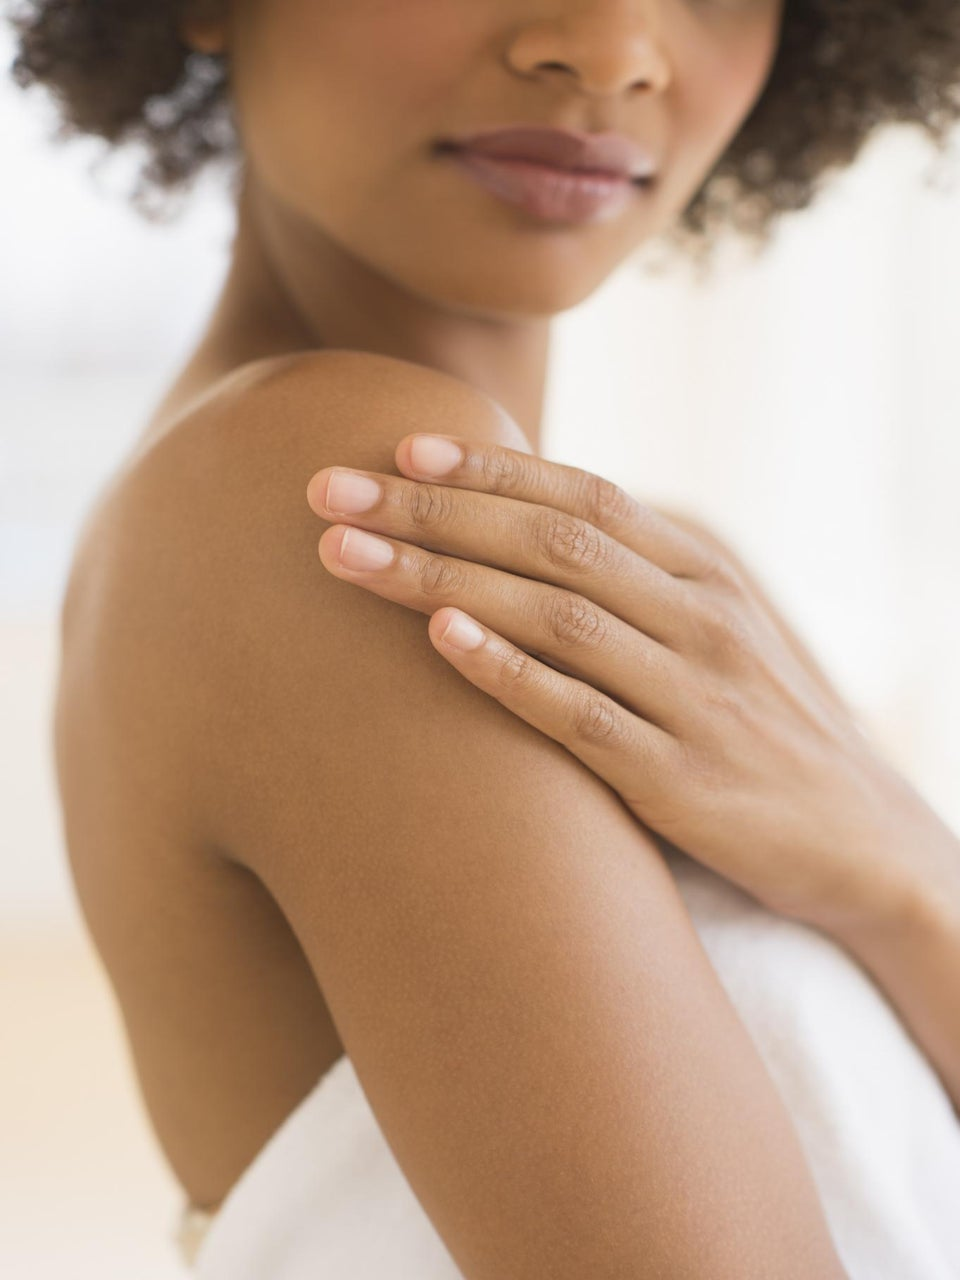 The App That Could Help You Detect Skin Cancer